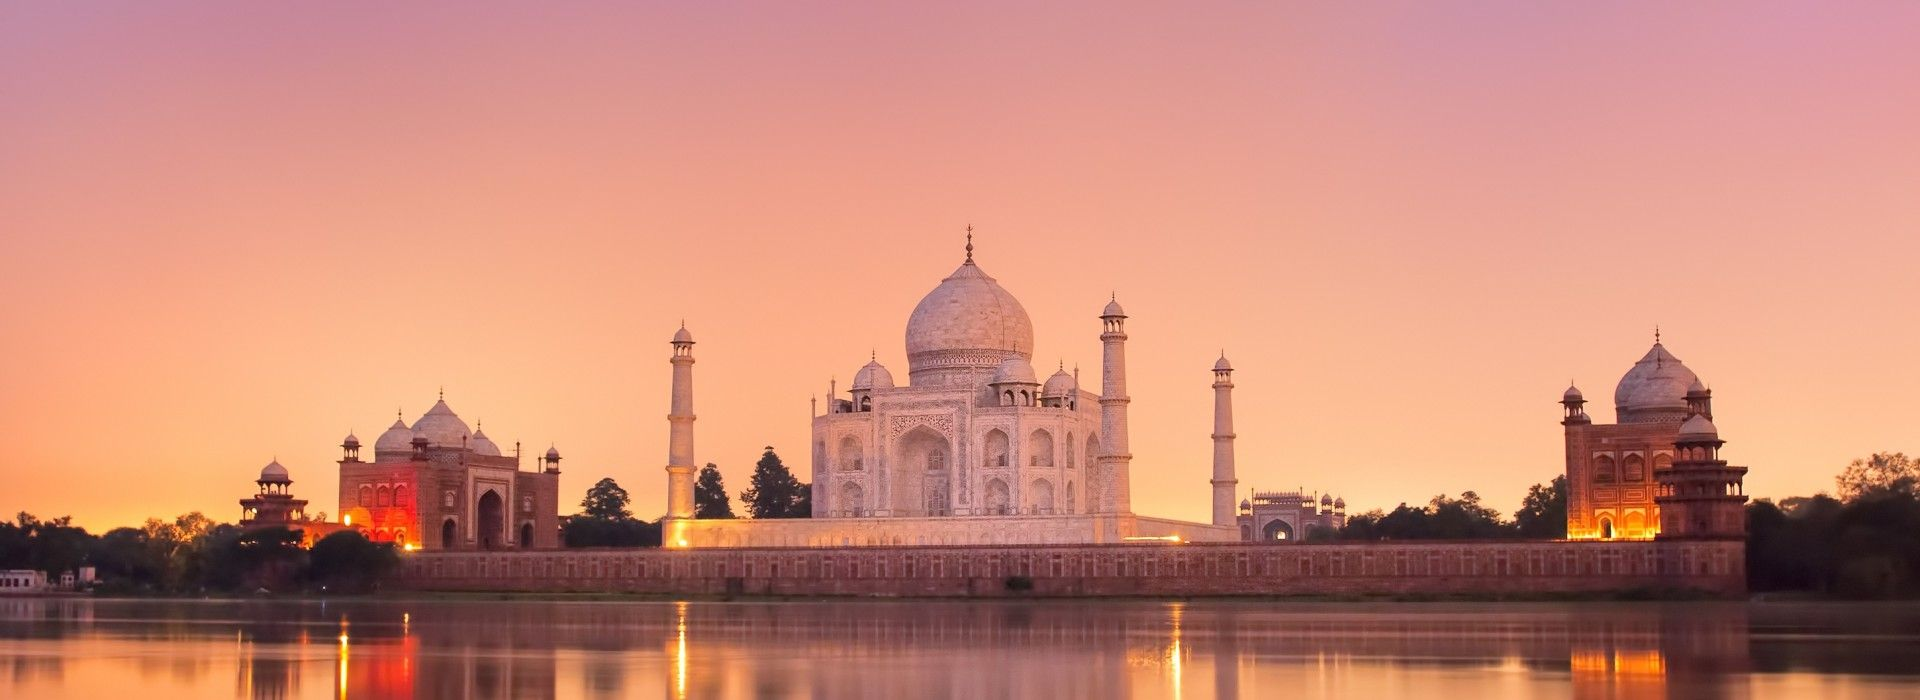 Beach, romance, getaways and relaxation Tours in Jaipur